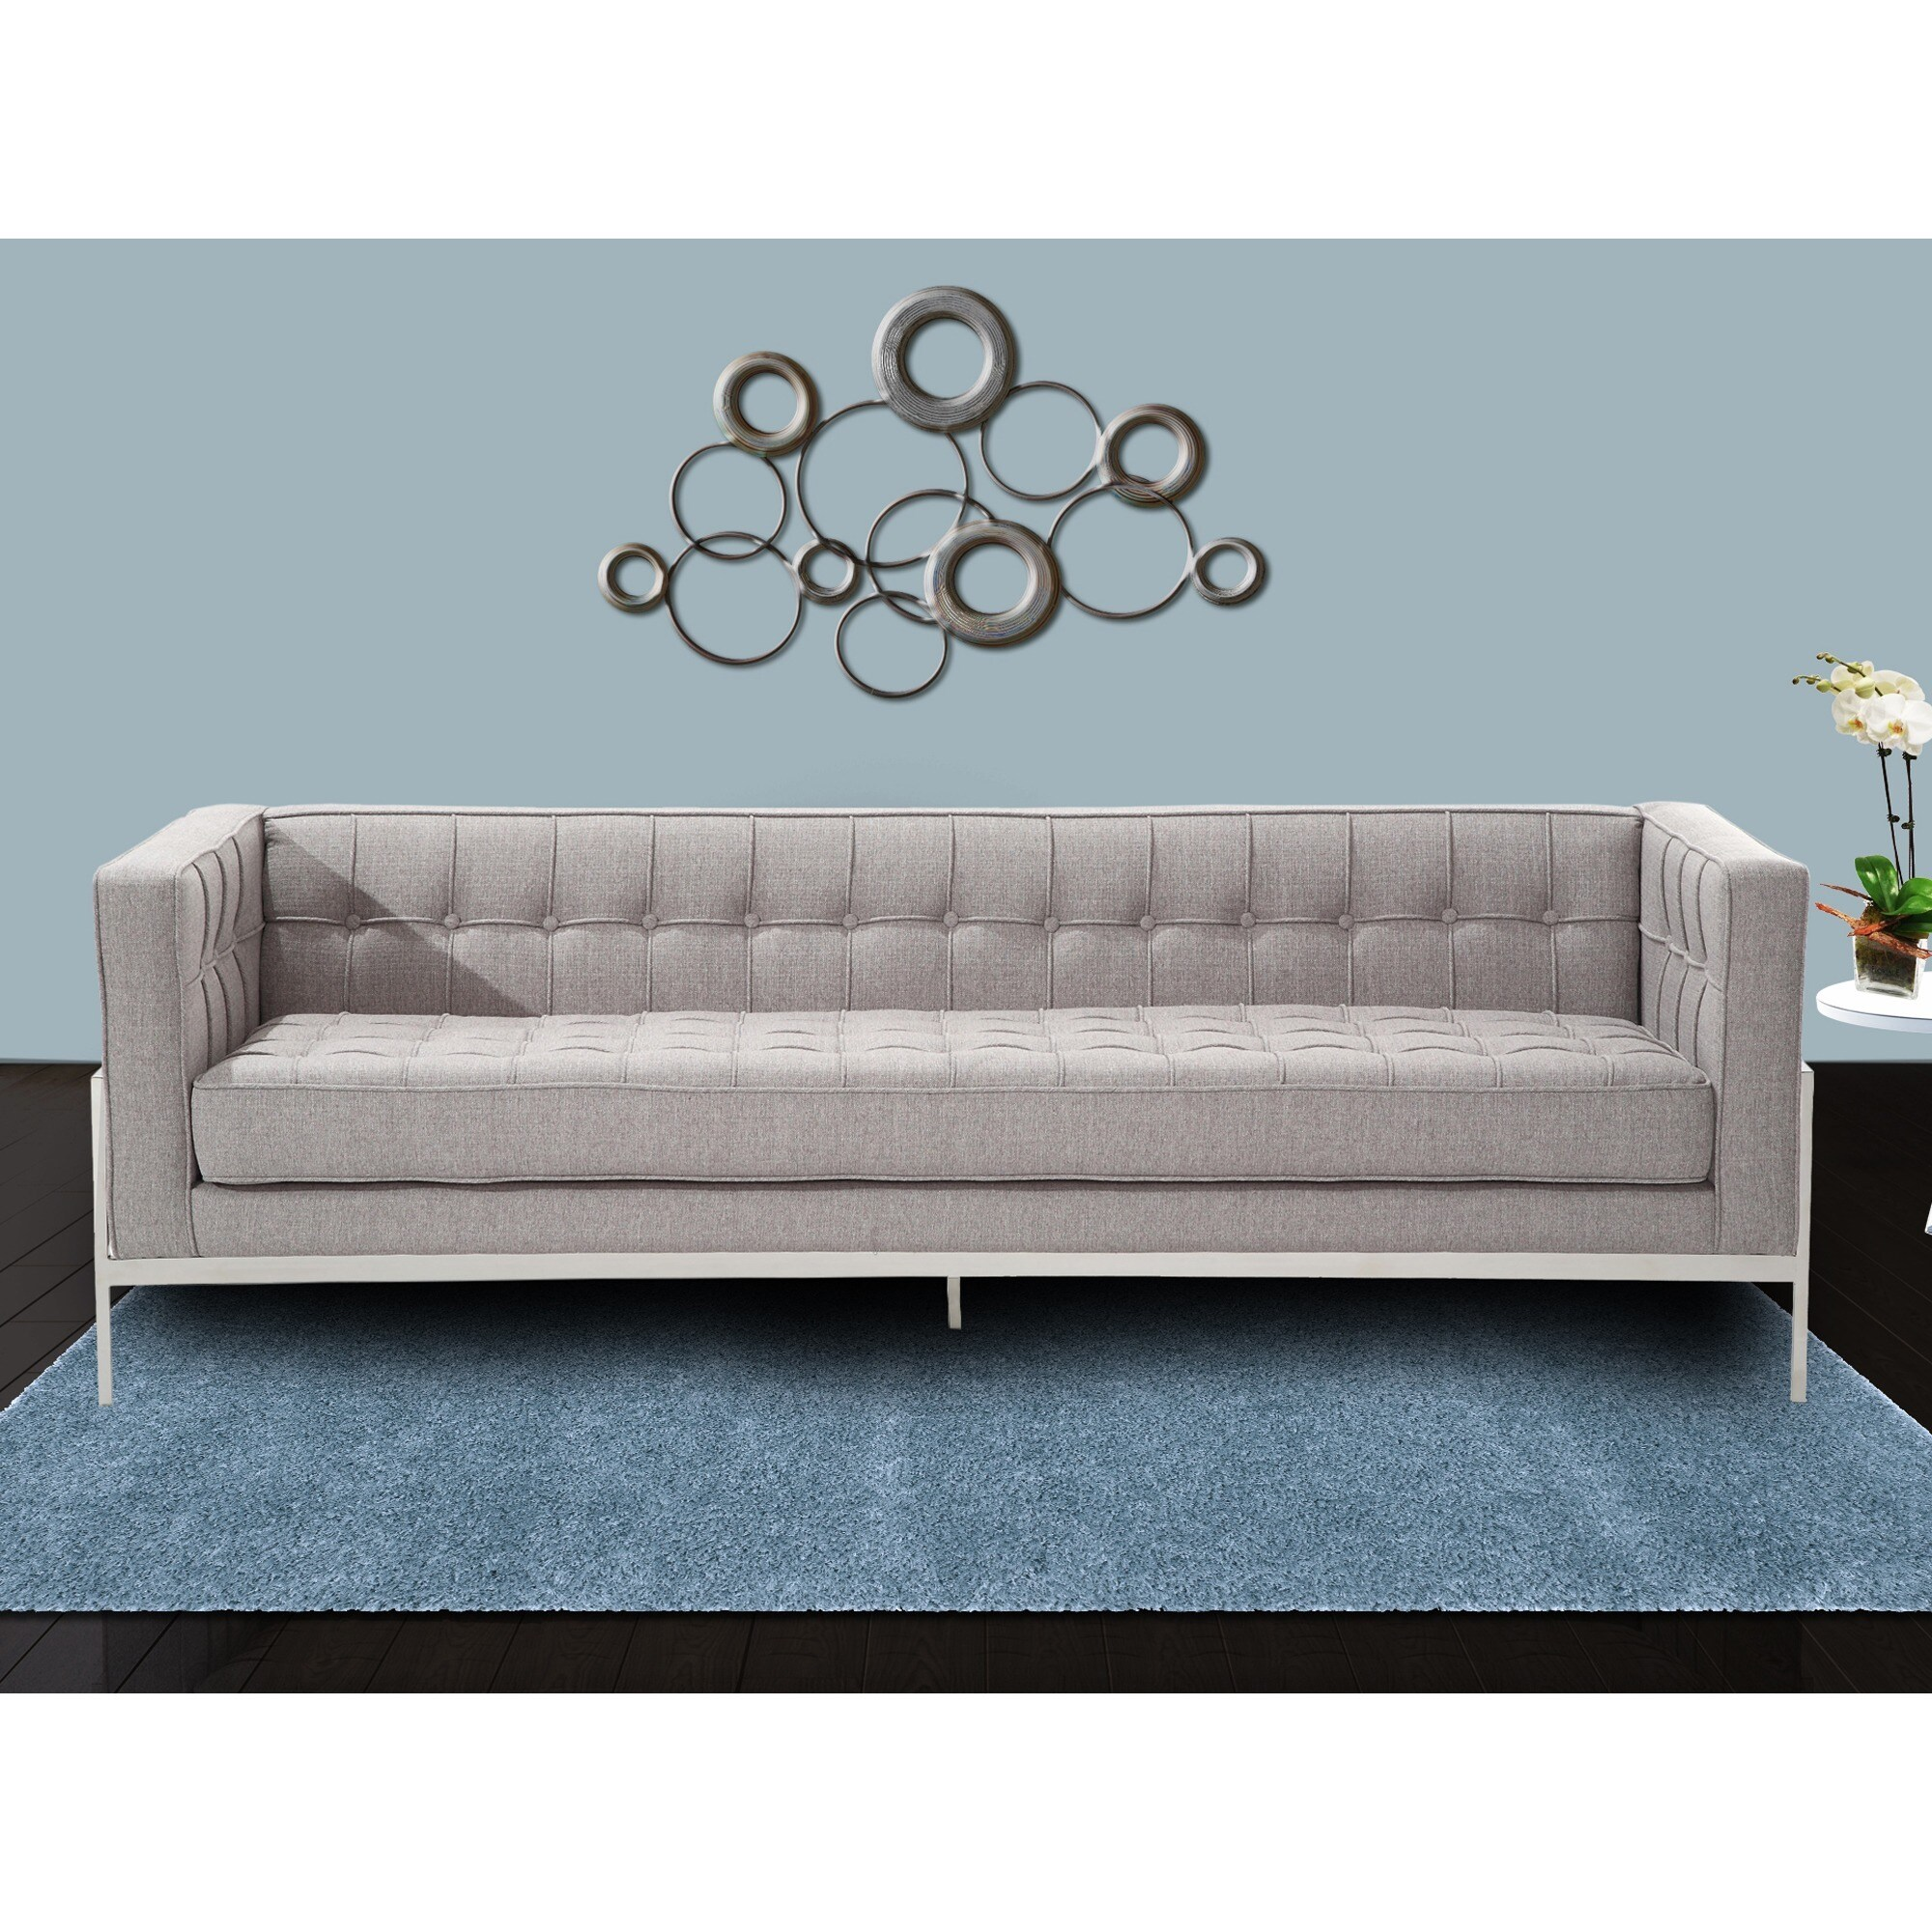 Contemporary Couch Armen Living Andre Contemporary Sofa In Grey Tweed And Stainless Steel